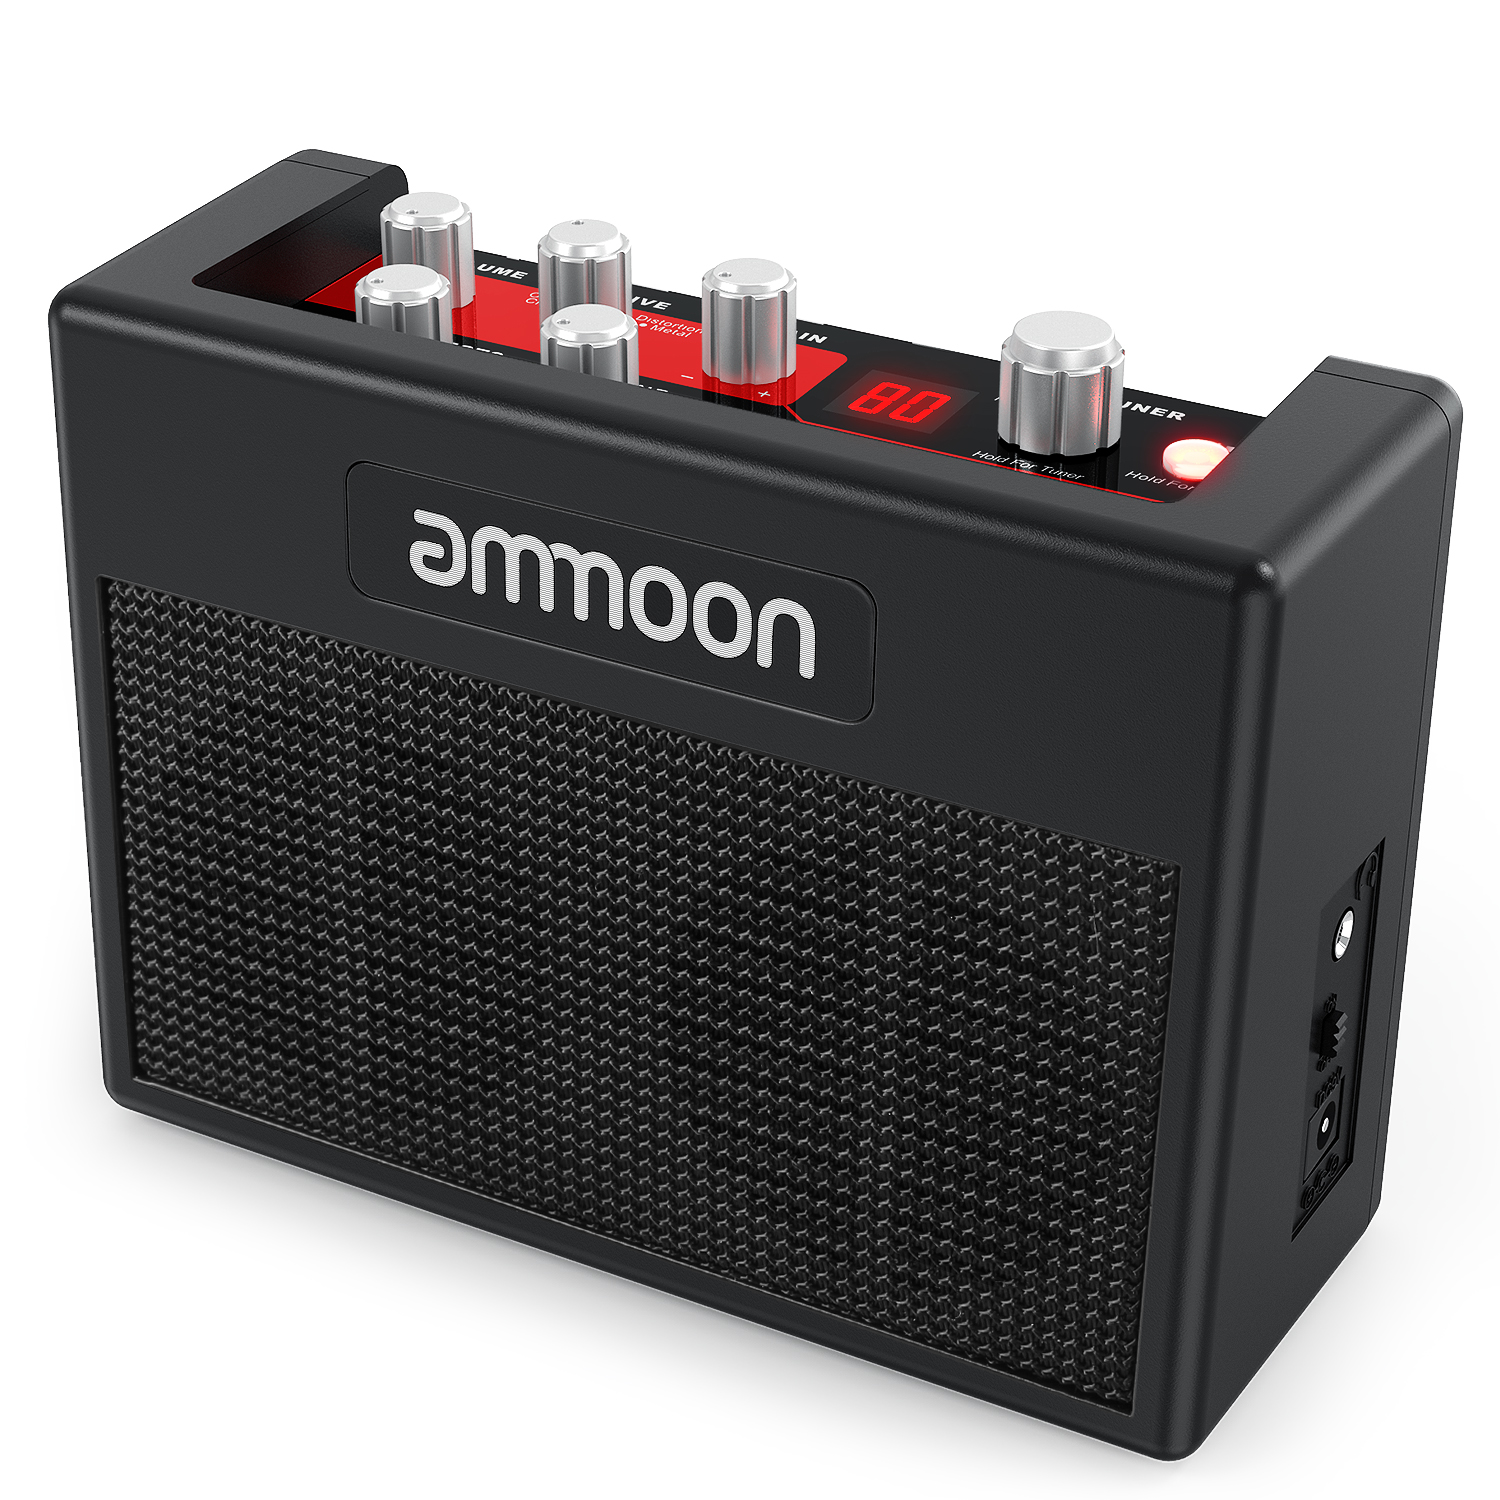 POCKAMP Portable Guitar Amplifier Amp Built in Multi effects 80 Drum Rhythms Support Tuner Tap Tempo